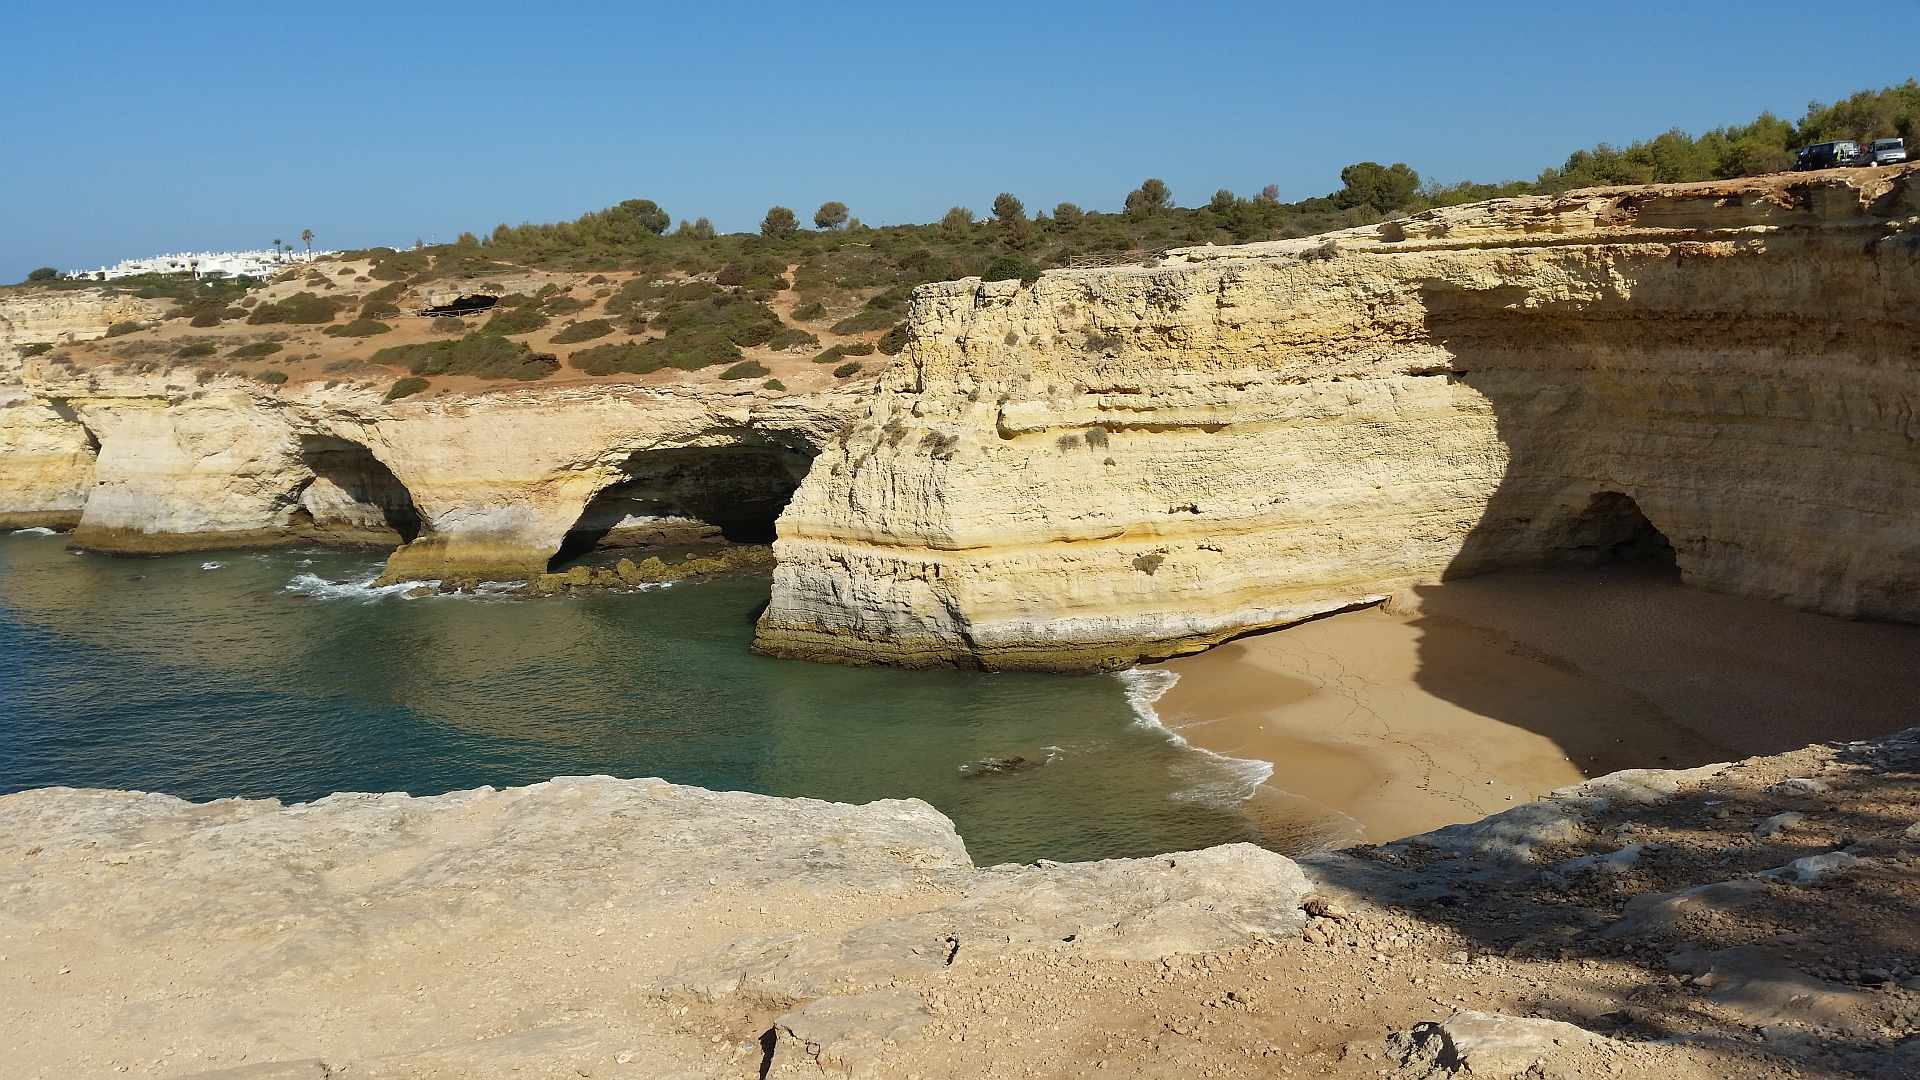 Lagao - Algarve - the caves in the ocean - Praia da Corredoura